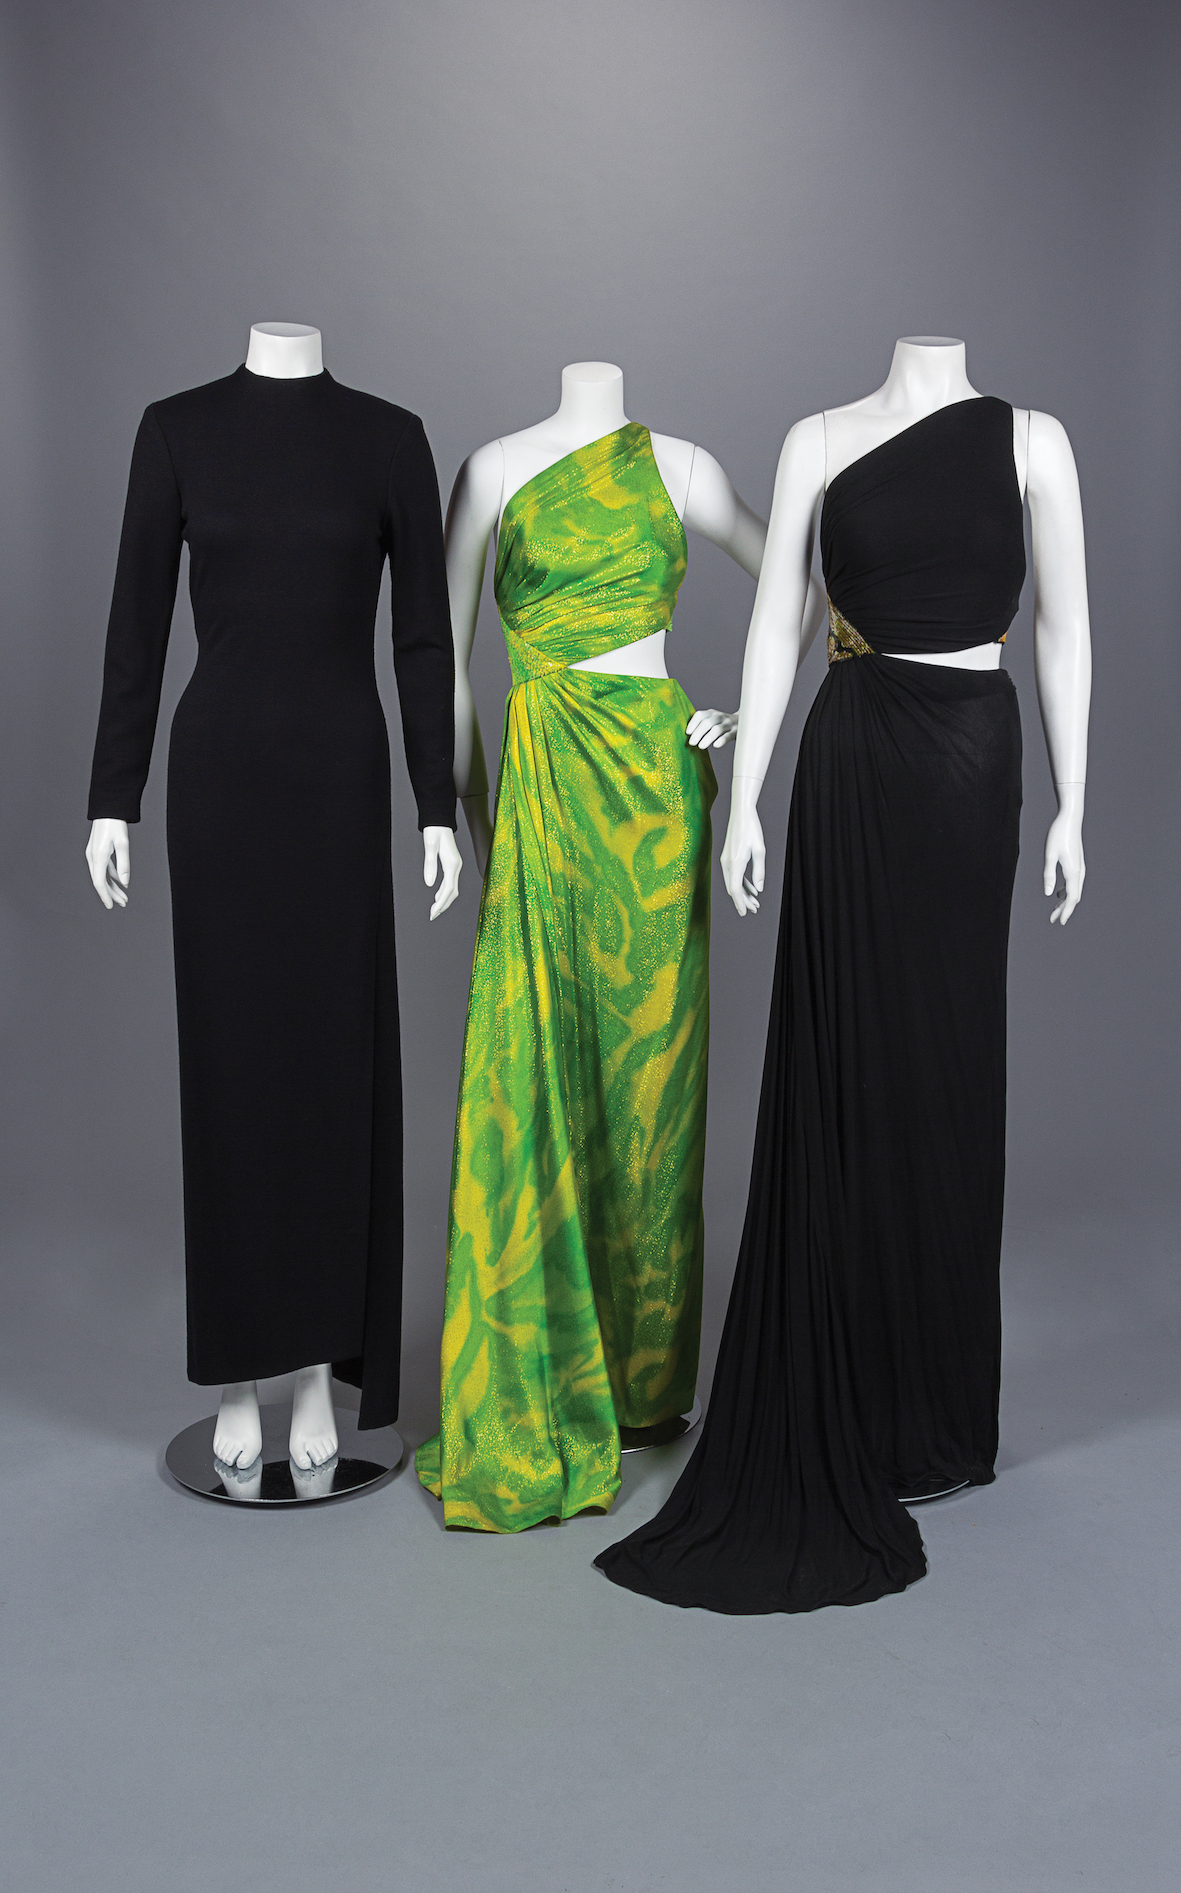 Three Geoffrey Beene dresses from 1992.